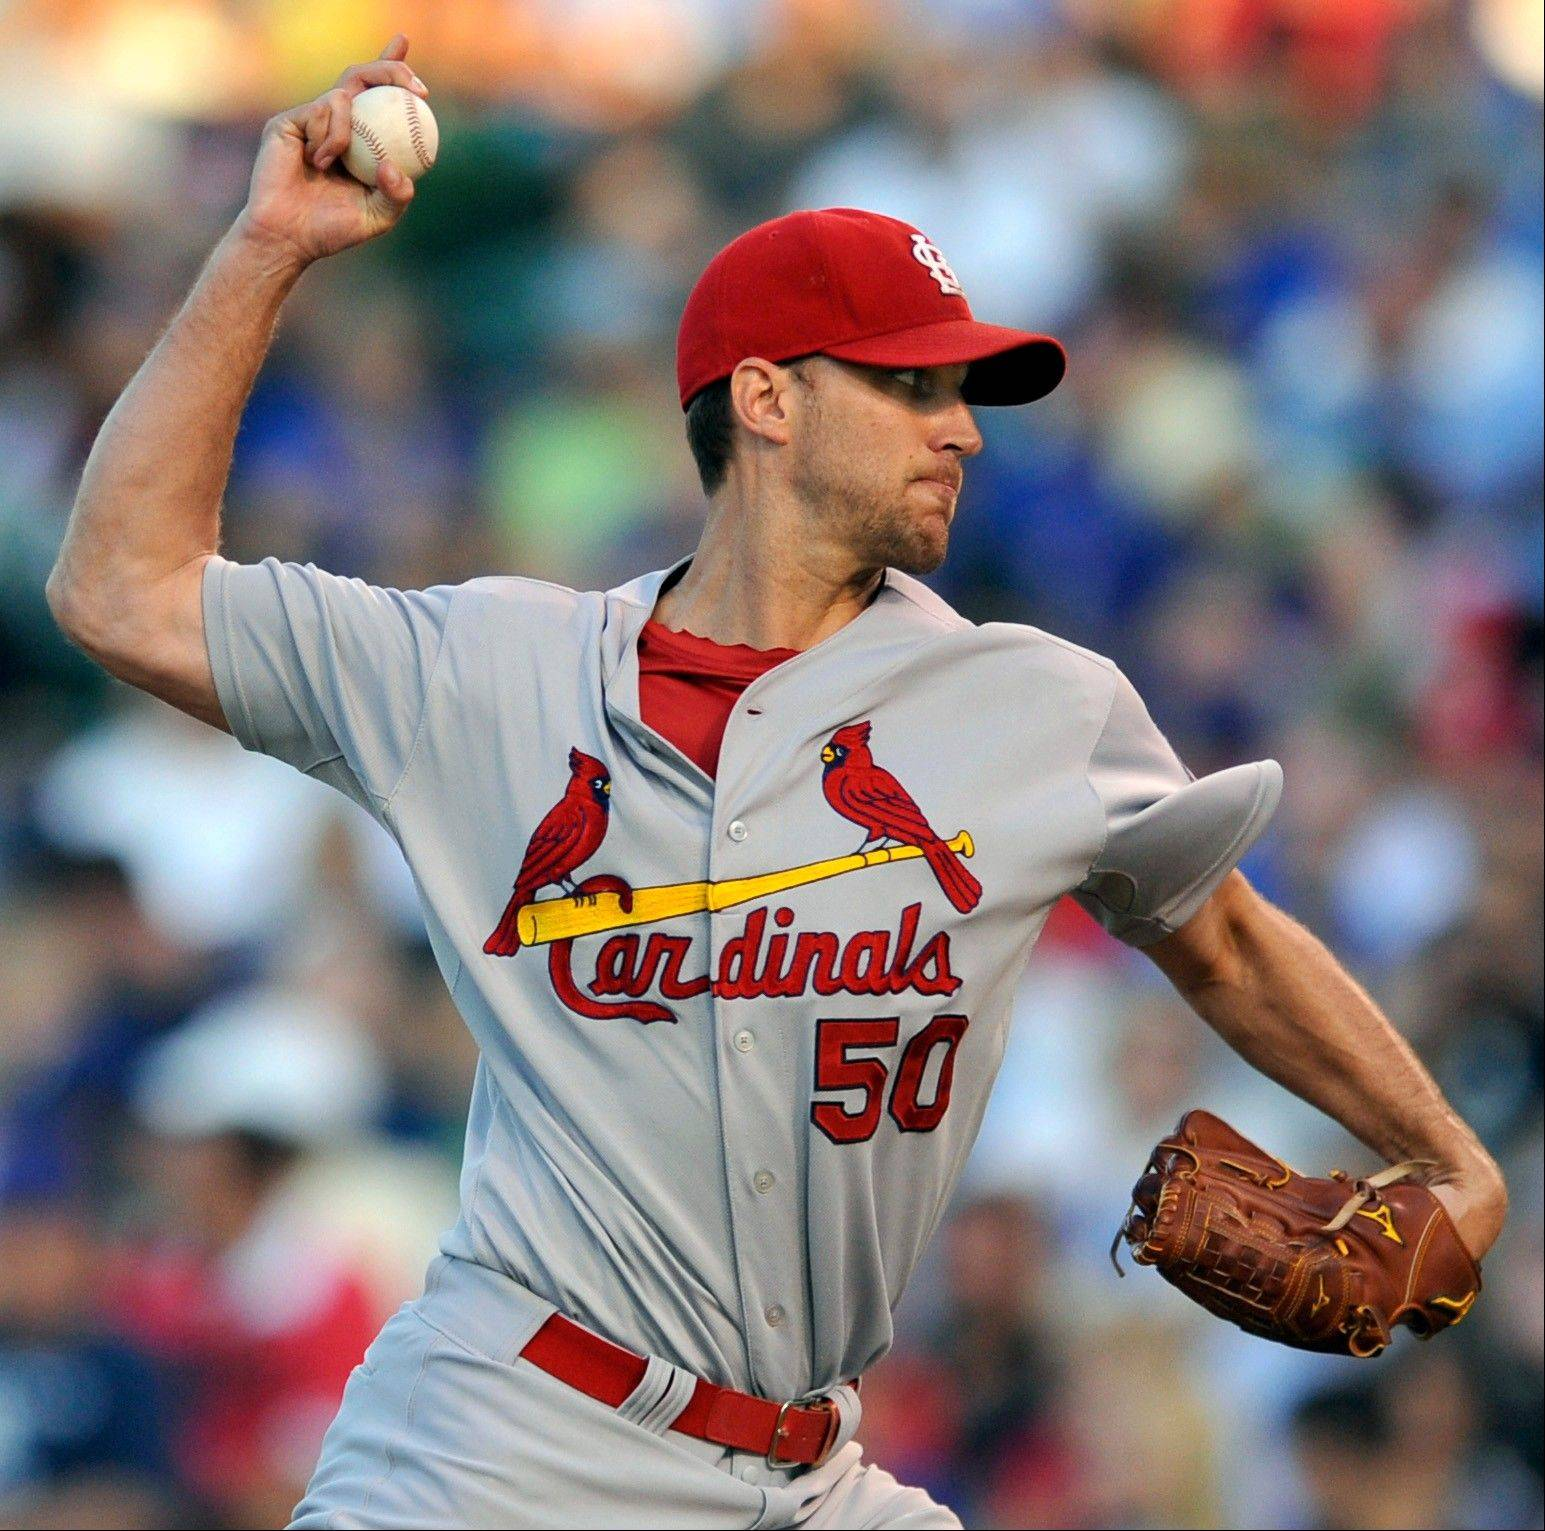 St. Louis Cardinals starter Adam Wainwright delivers a pitch during the first inning of a baseball game against the Chicago Cubs in Chicago, Sunday, July 14, 2013. (AP Photo/Paul Beaty)